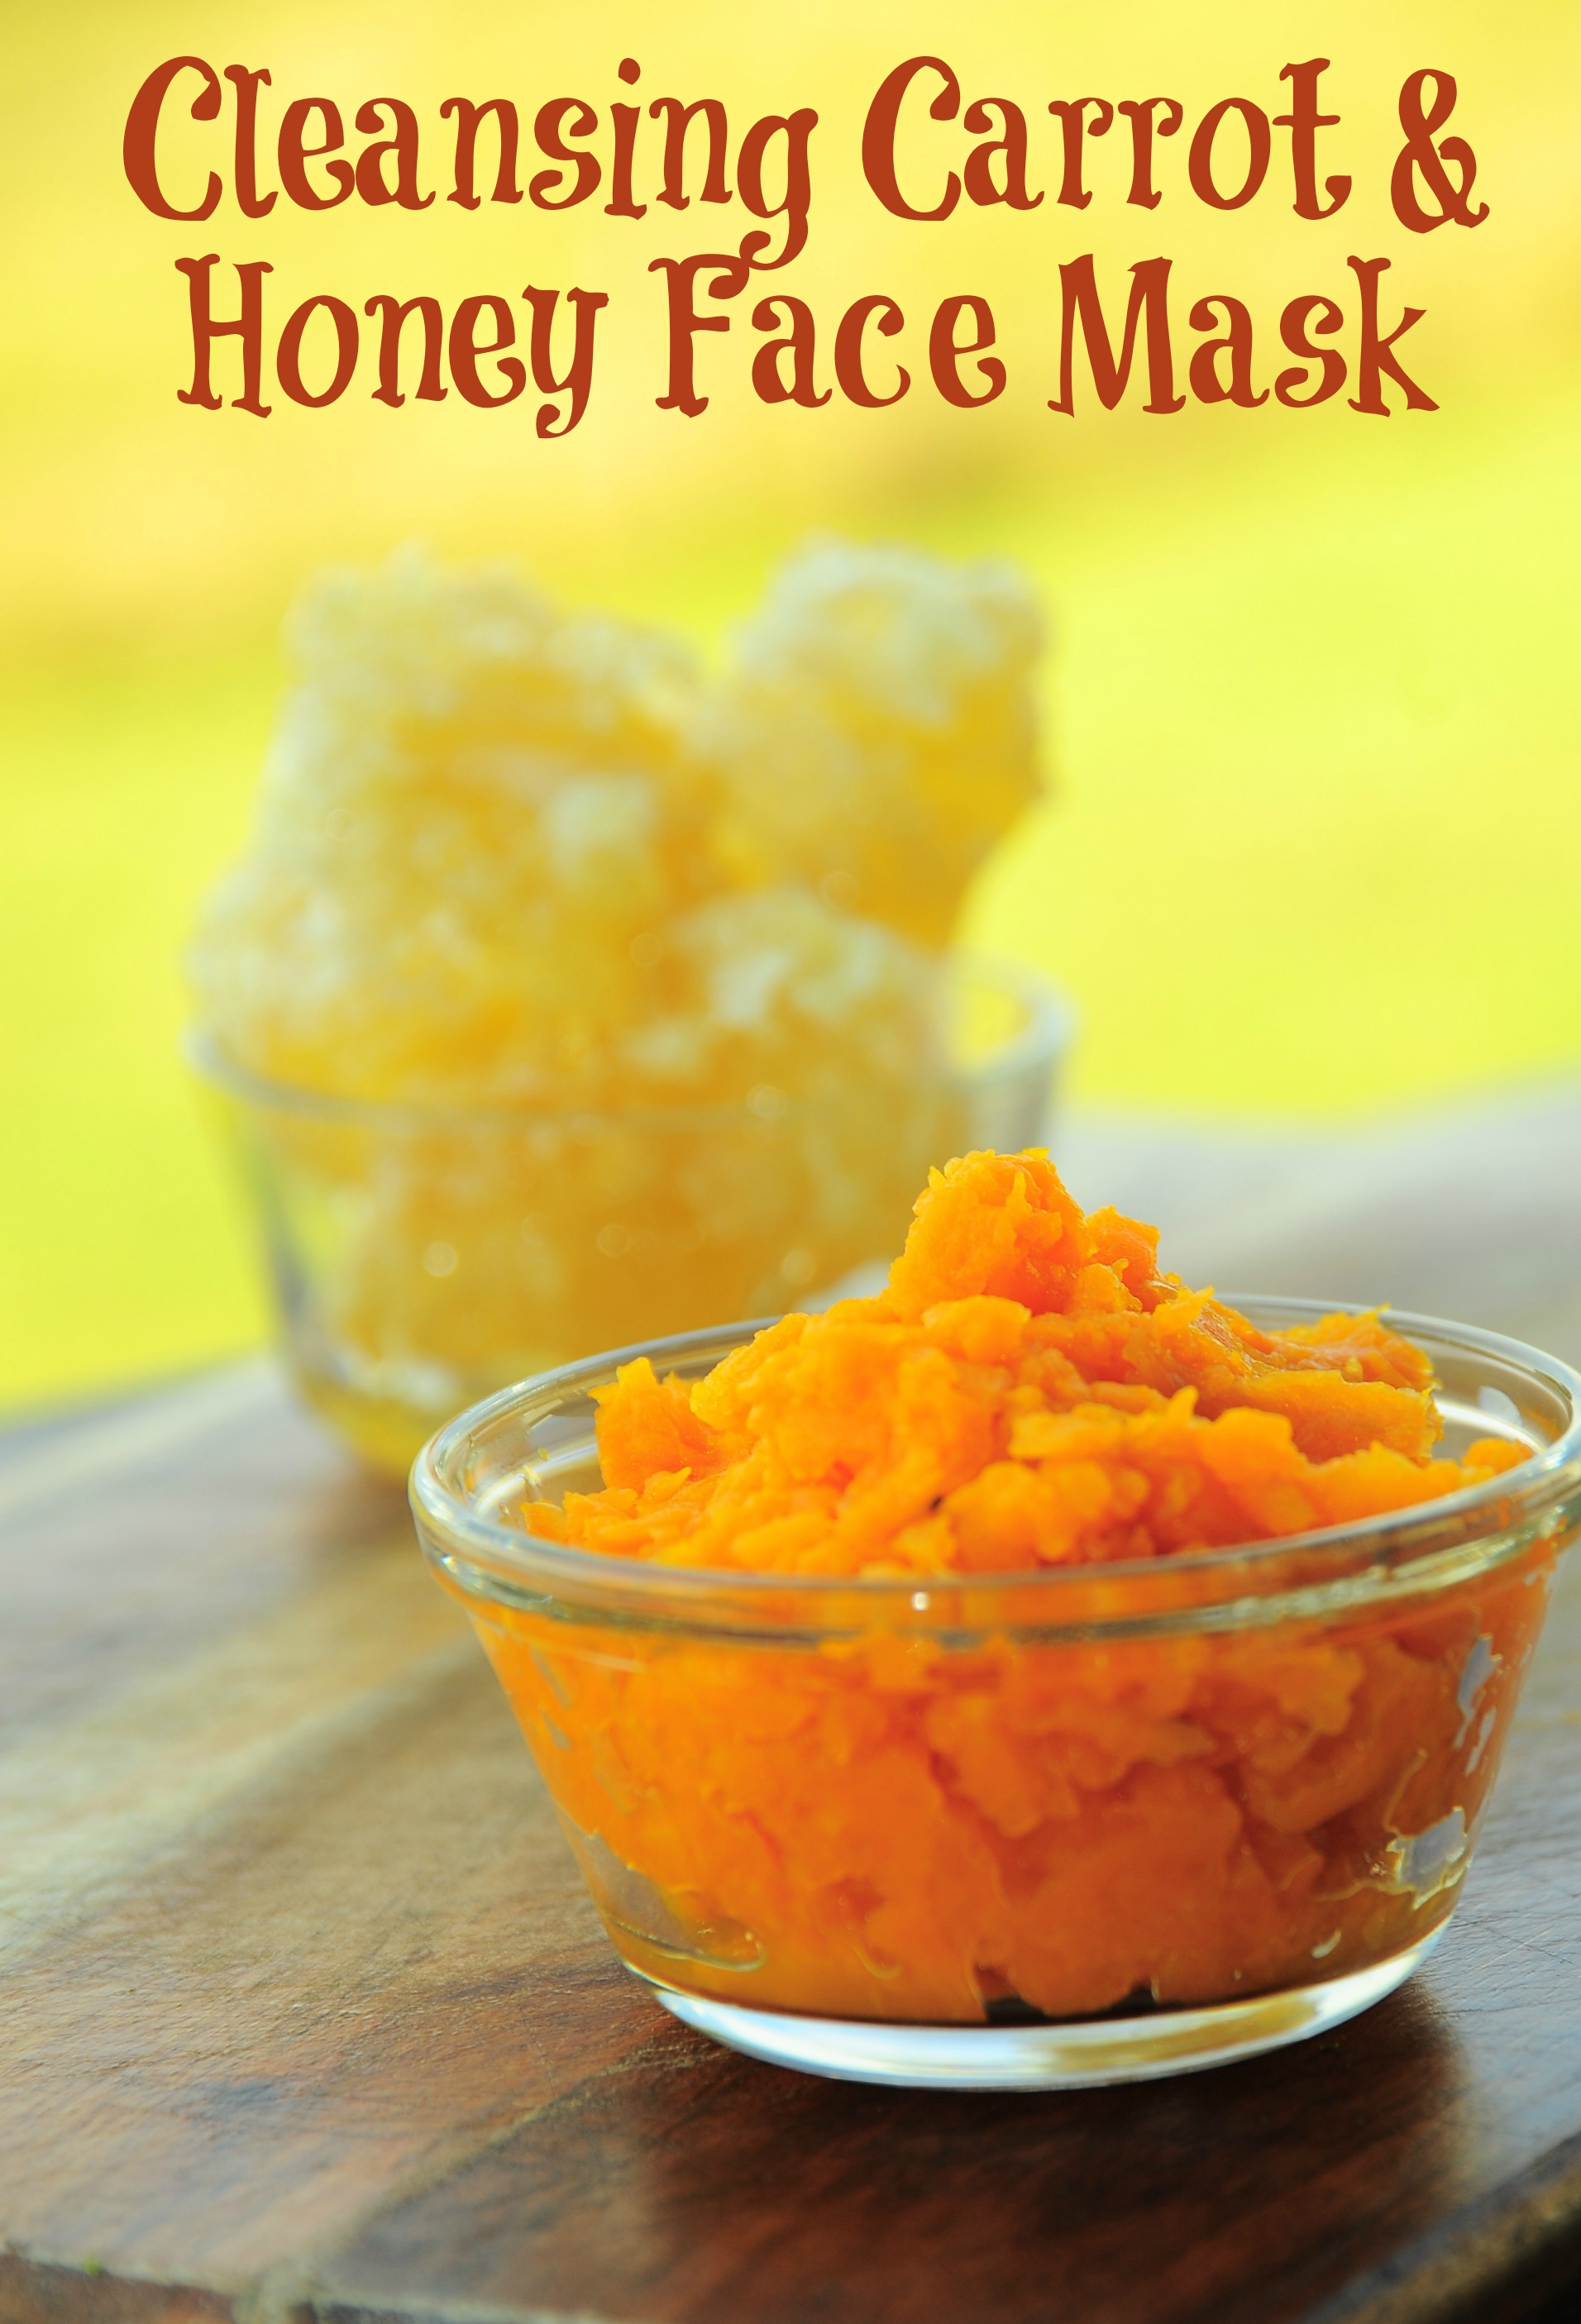 Make Your Own Carrot & Honey Face Mask